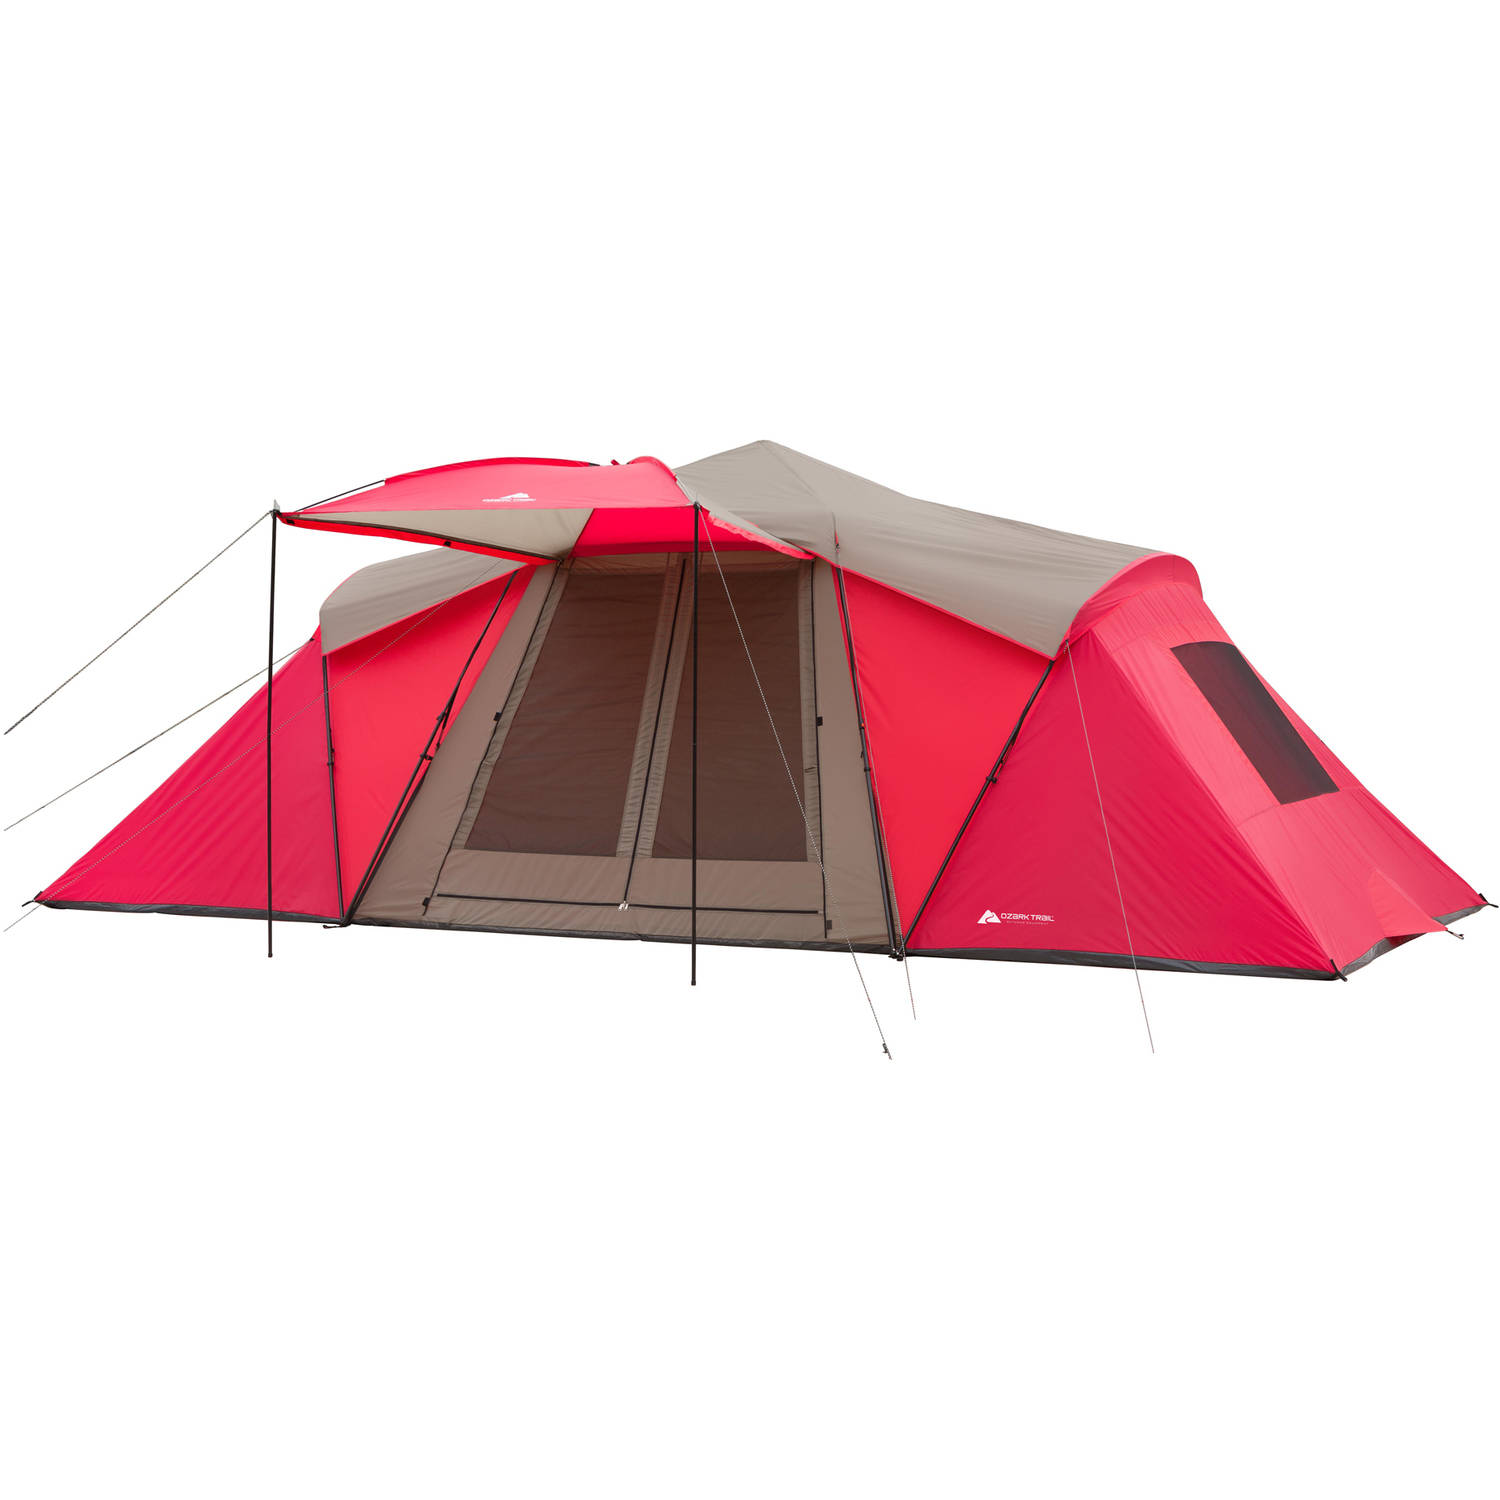 Ozark Trail 21' x 10' 3-Room Instant Tent with Awning, Sleeps 12, Red by